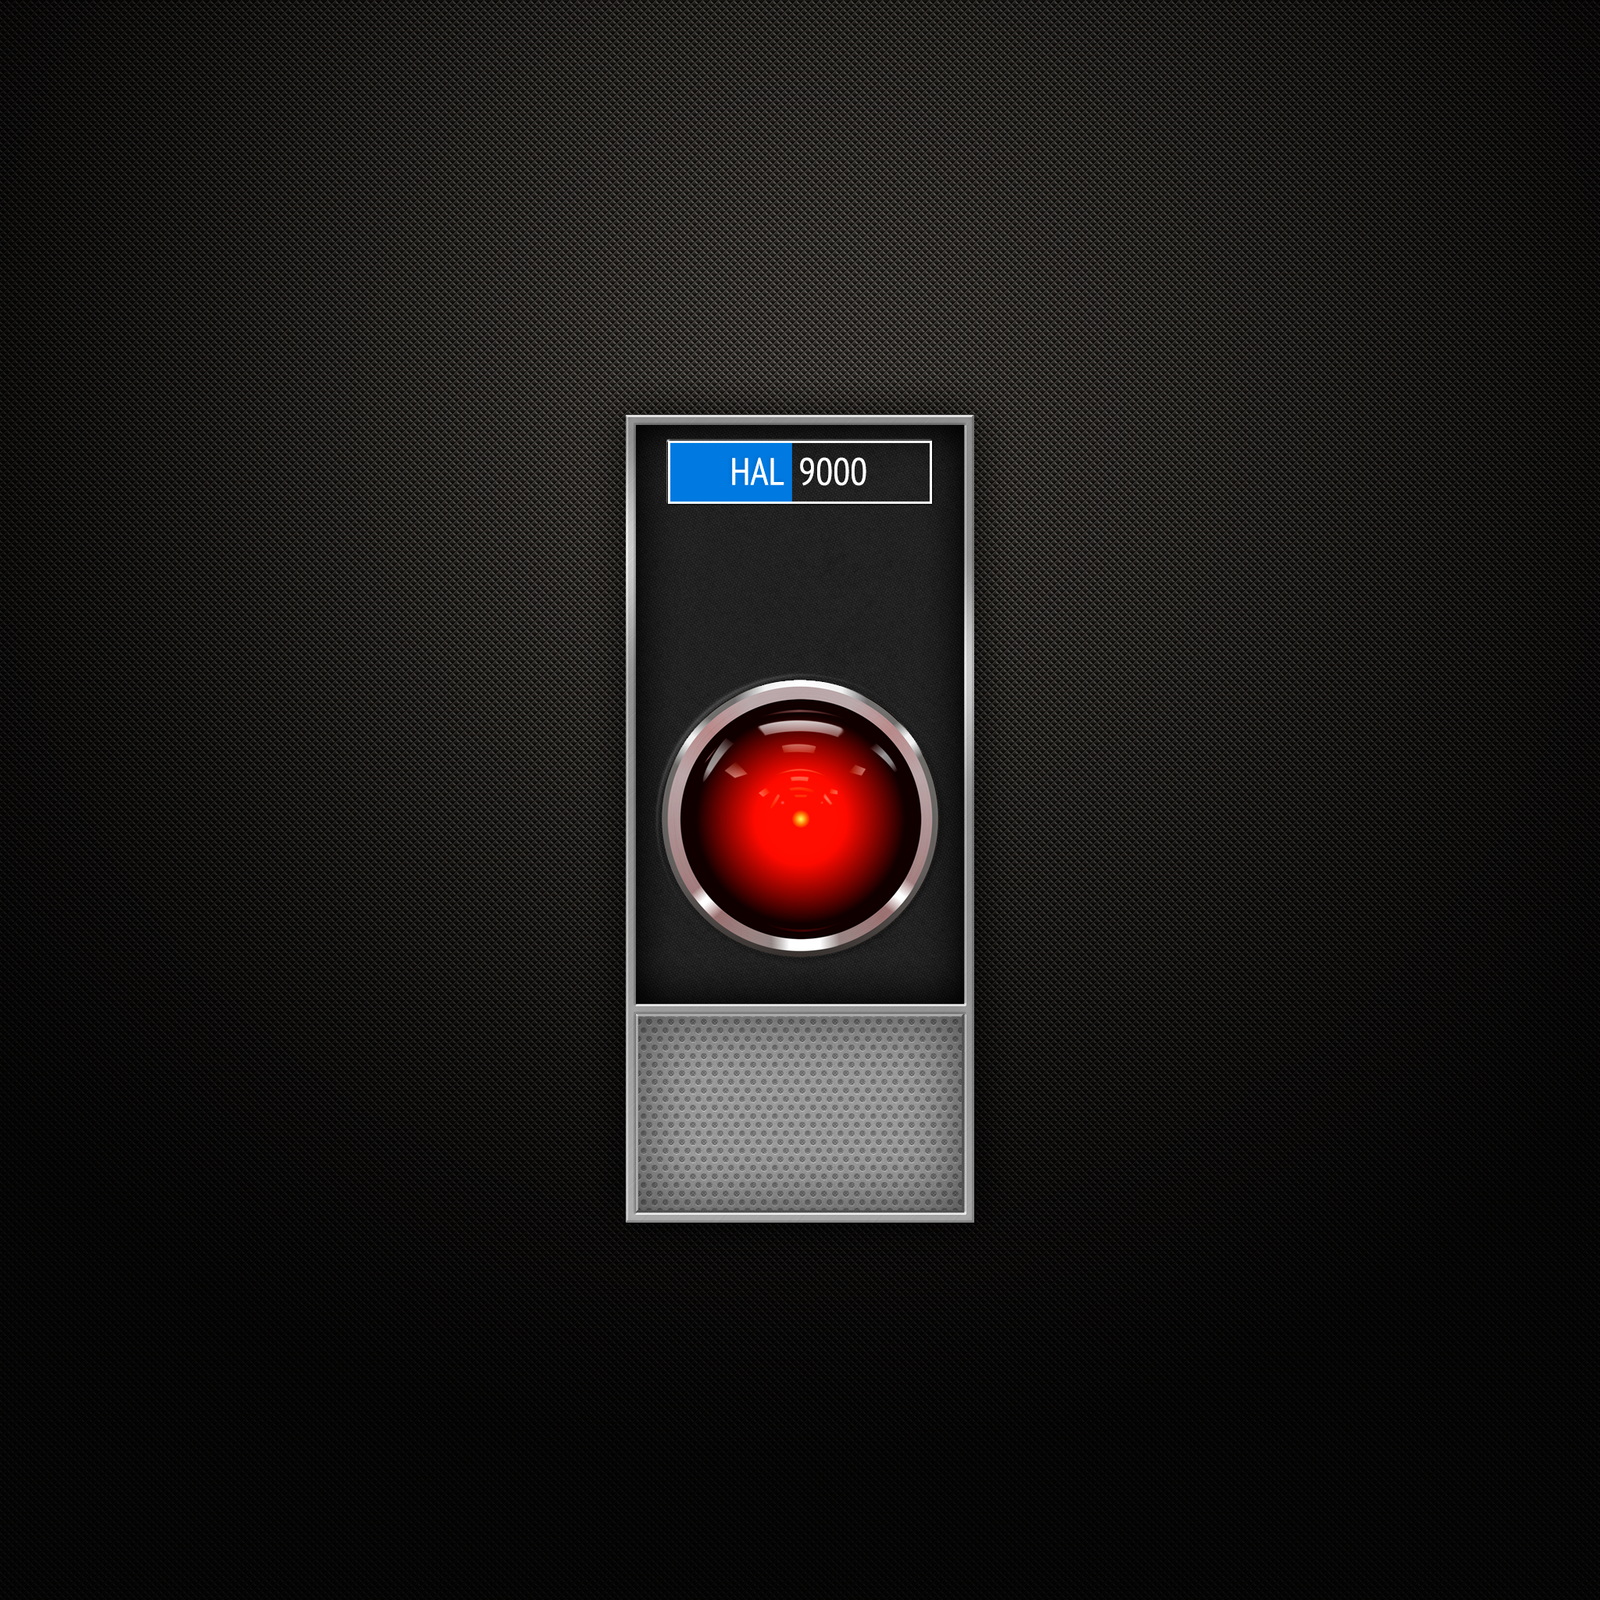 hal9000 ipad 3 retina wallpaper by arrizer on deviantart